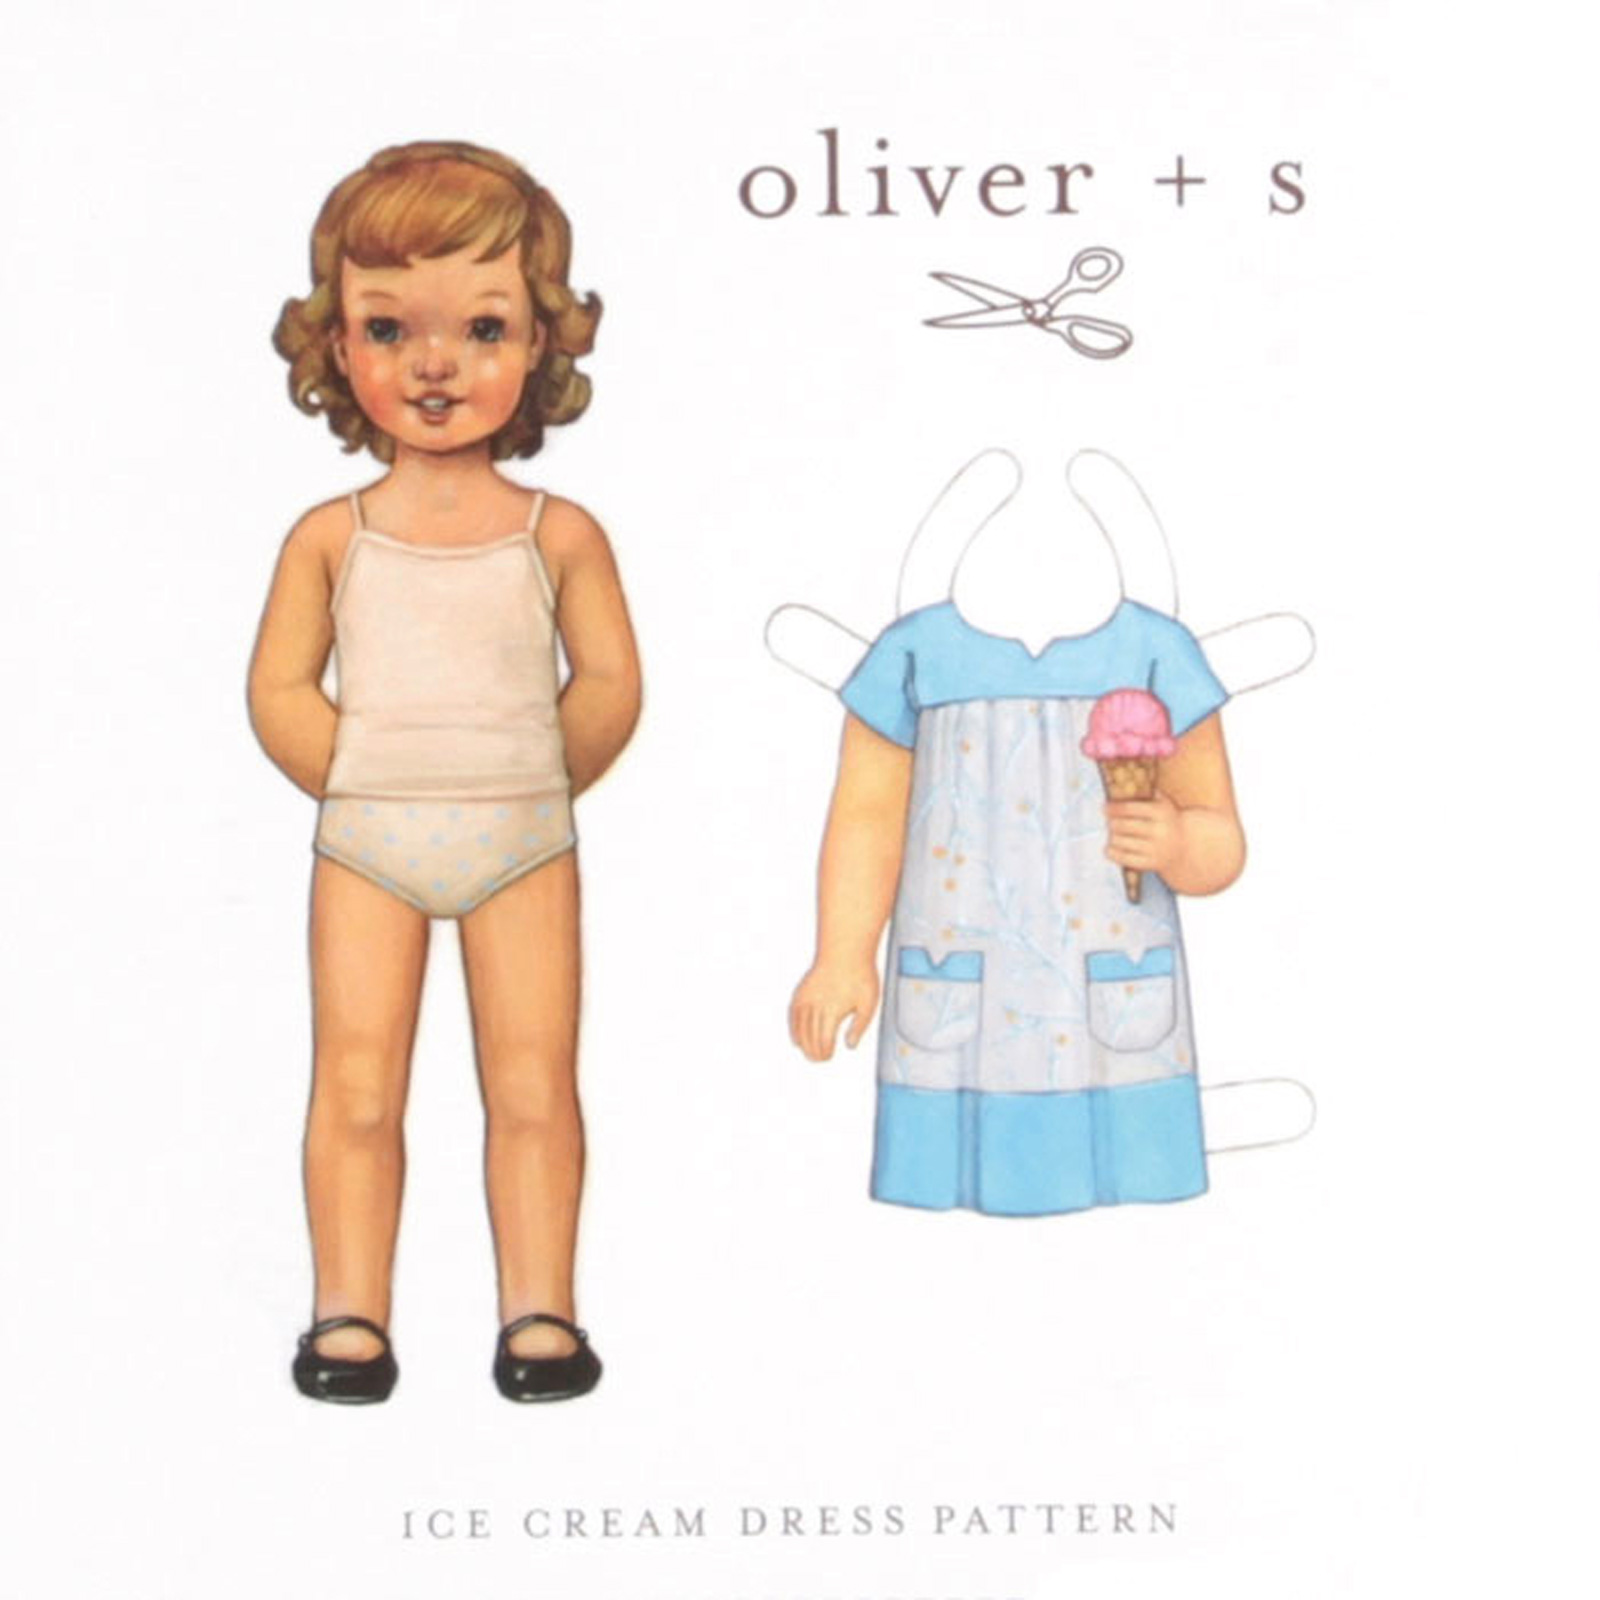 Oliver+ S Ice Cream Dress Pattern Sizes 5